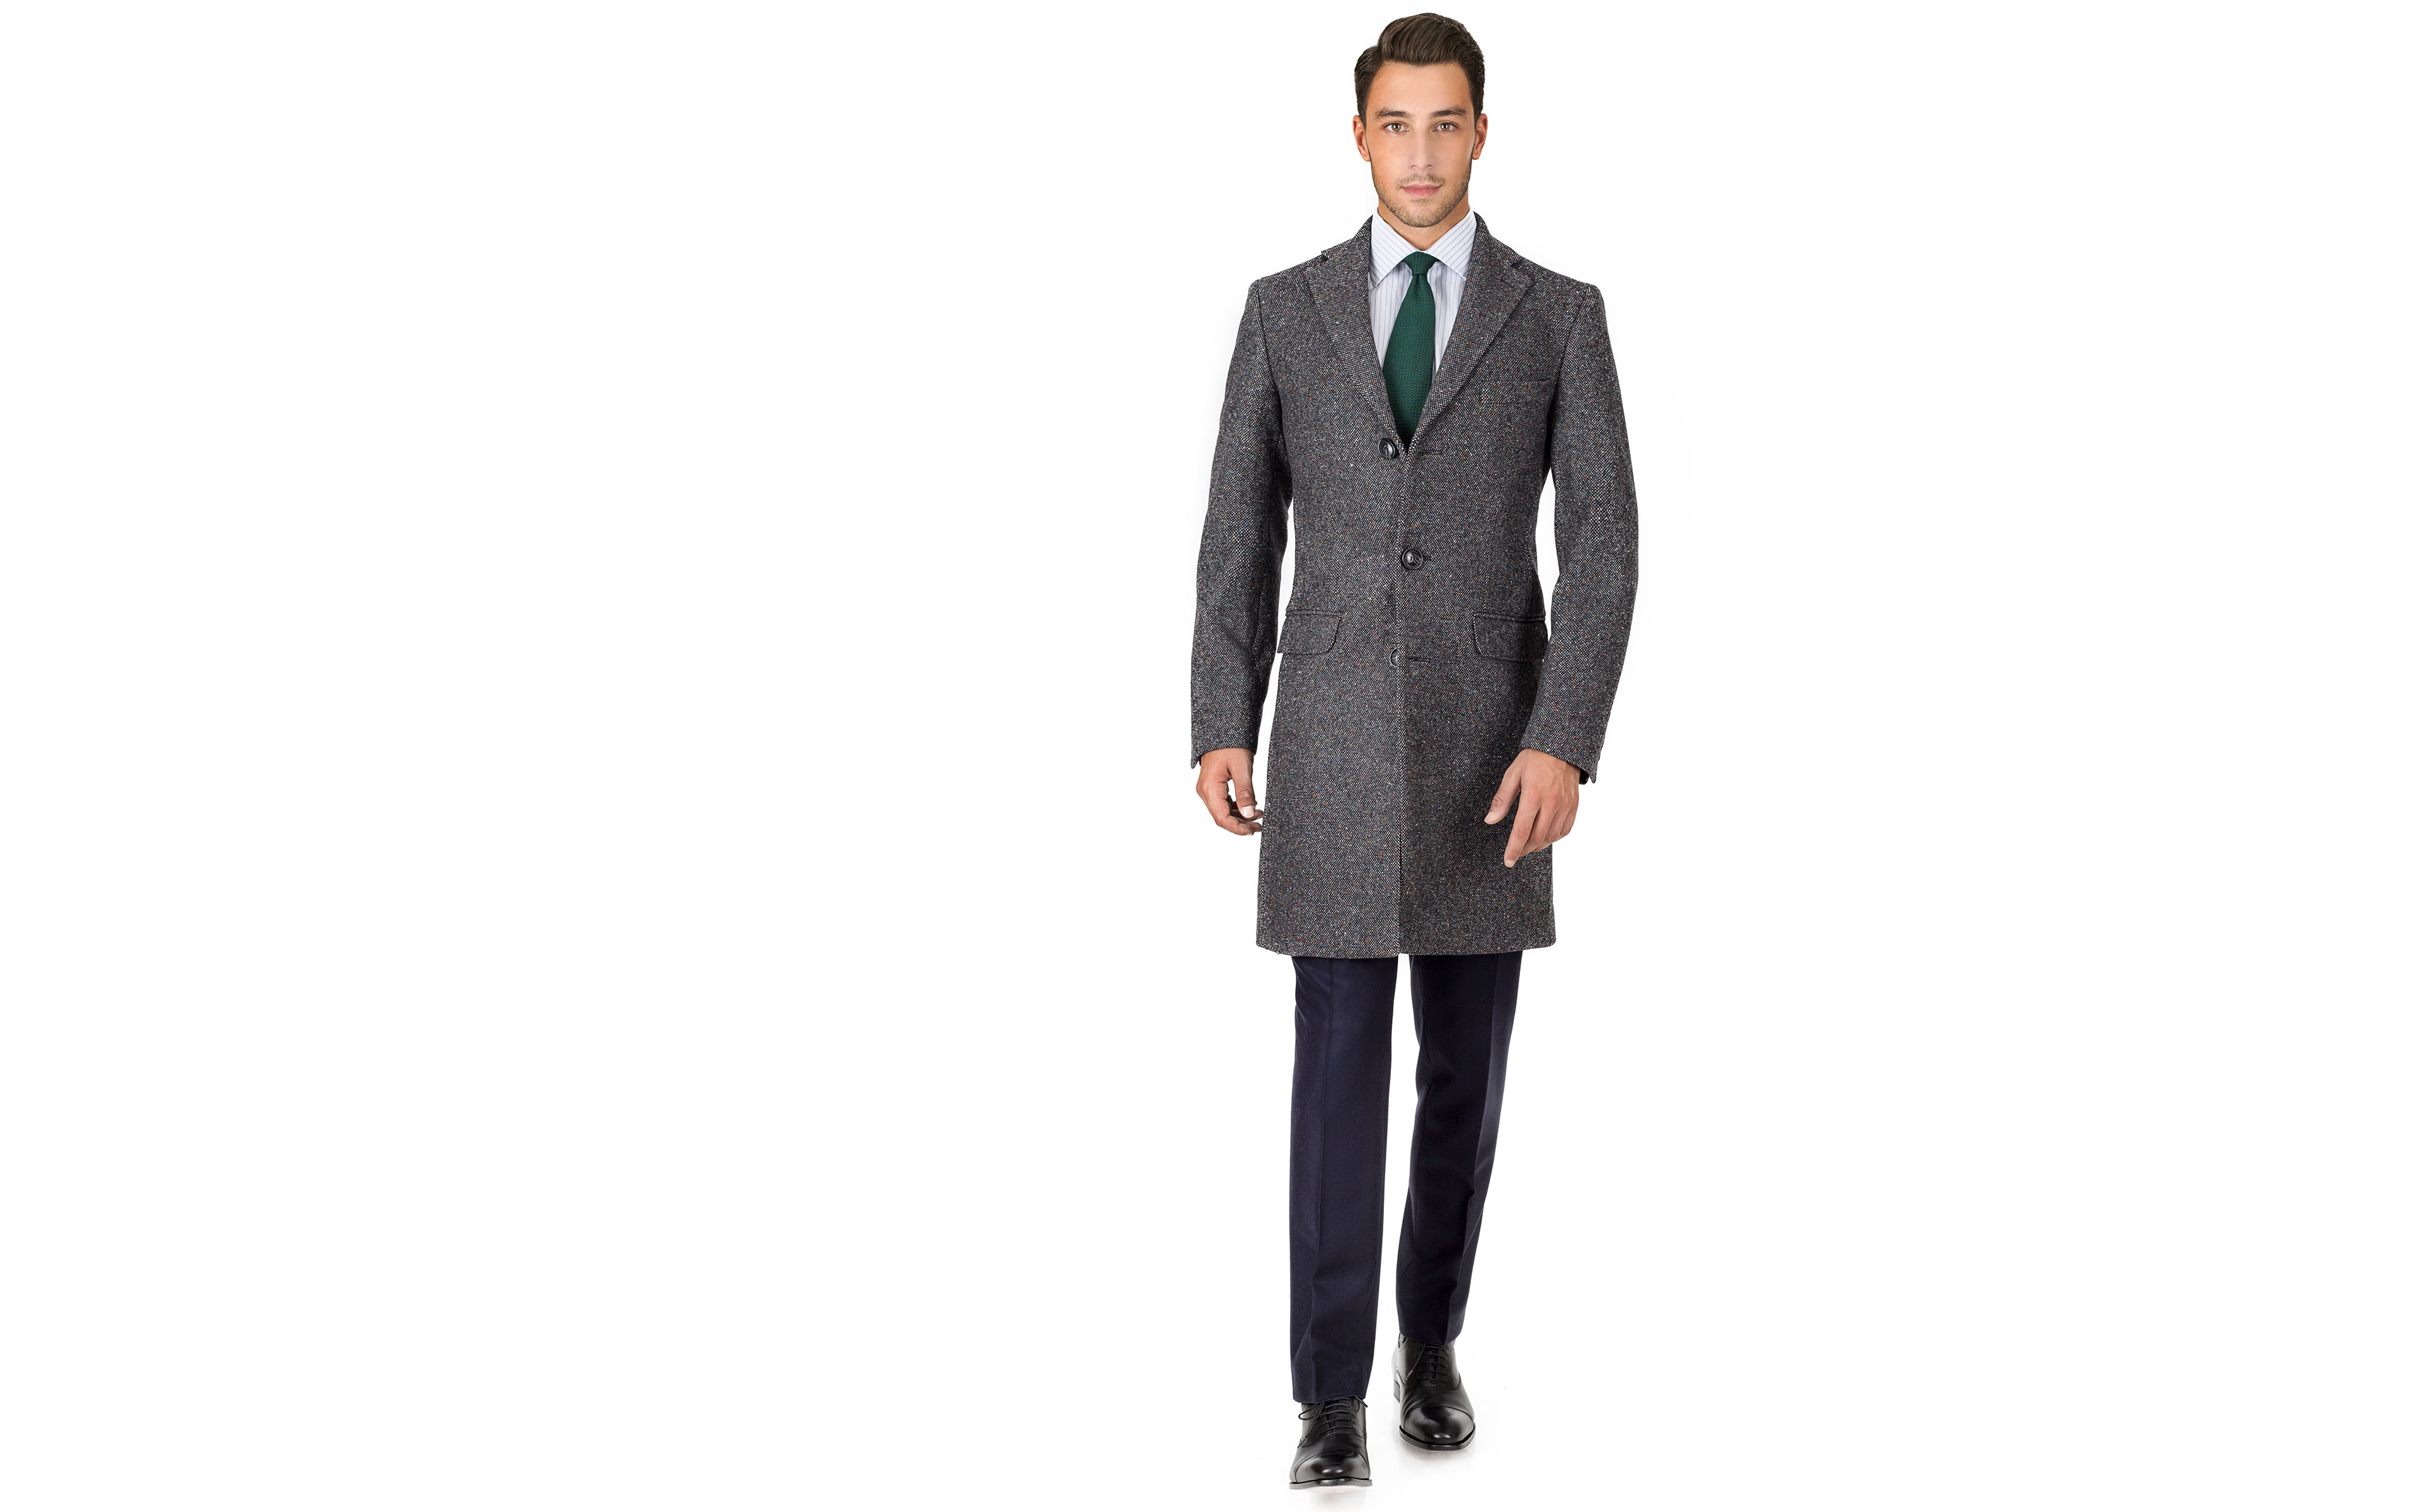 Coat in Charcoal Donegal Wool